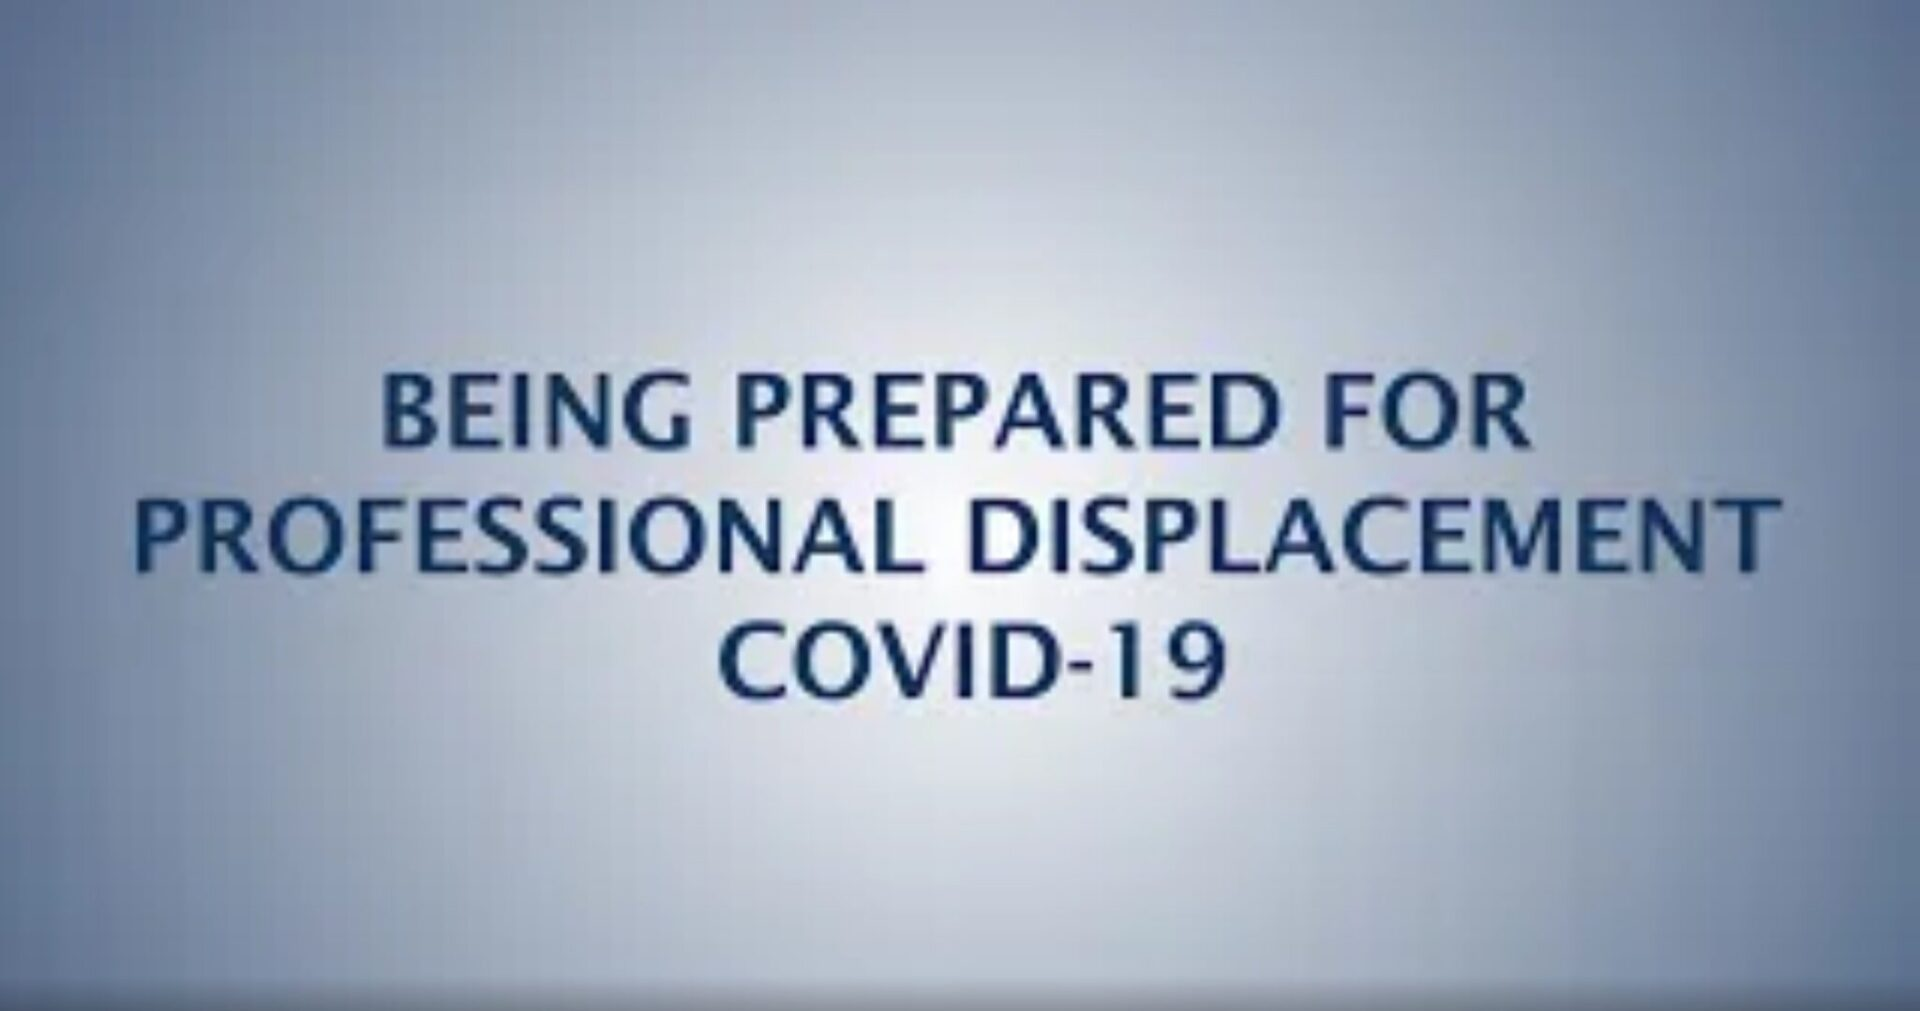 Being Prepared for Professional Displacement